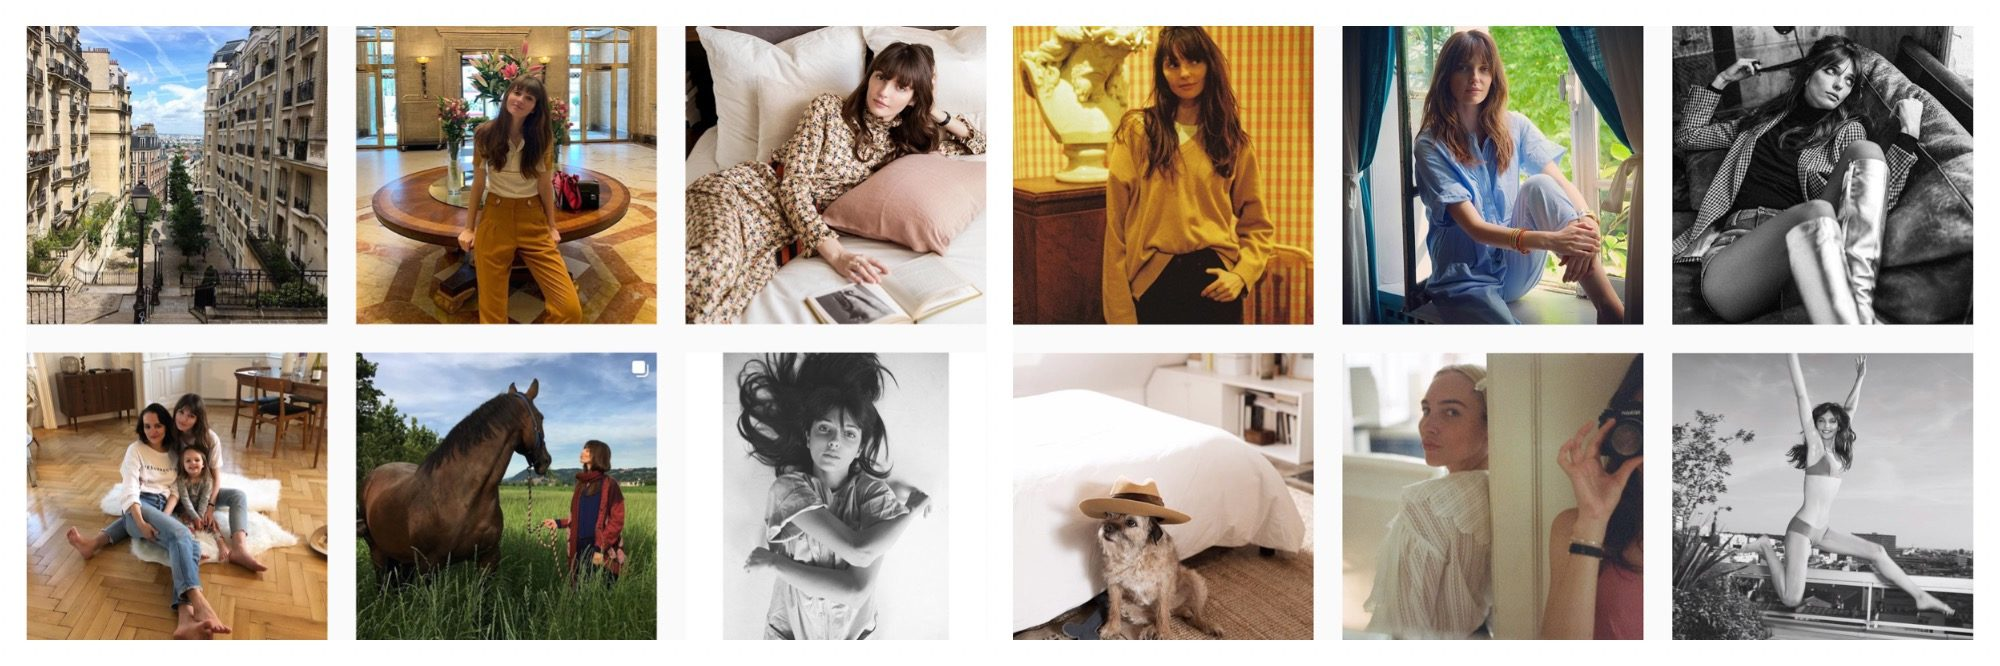 A selection of images of French Instagram fashion influencer Annabelle Belmondo.